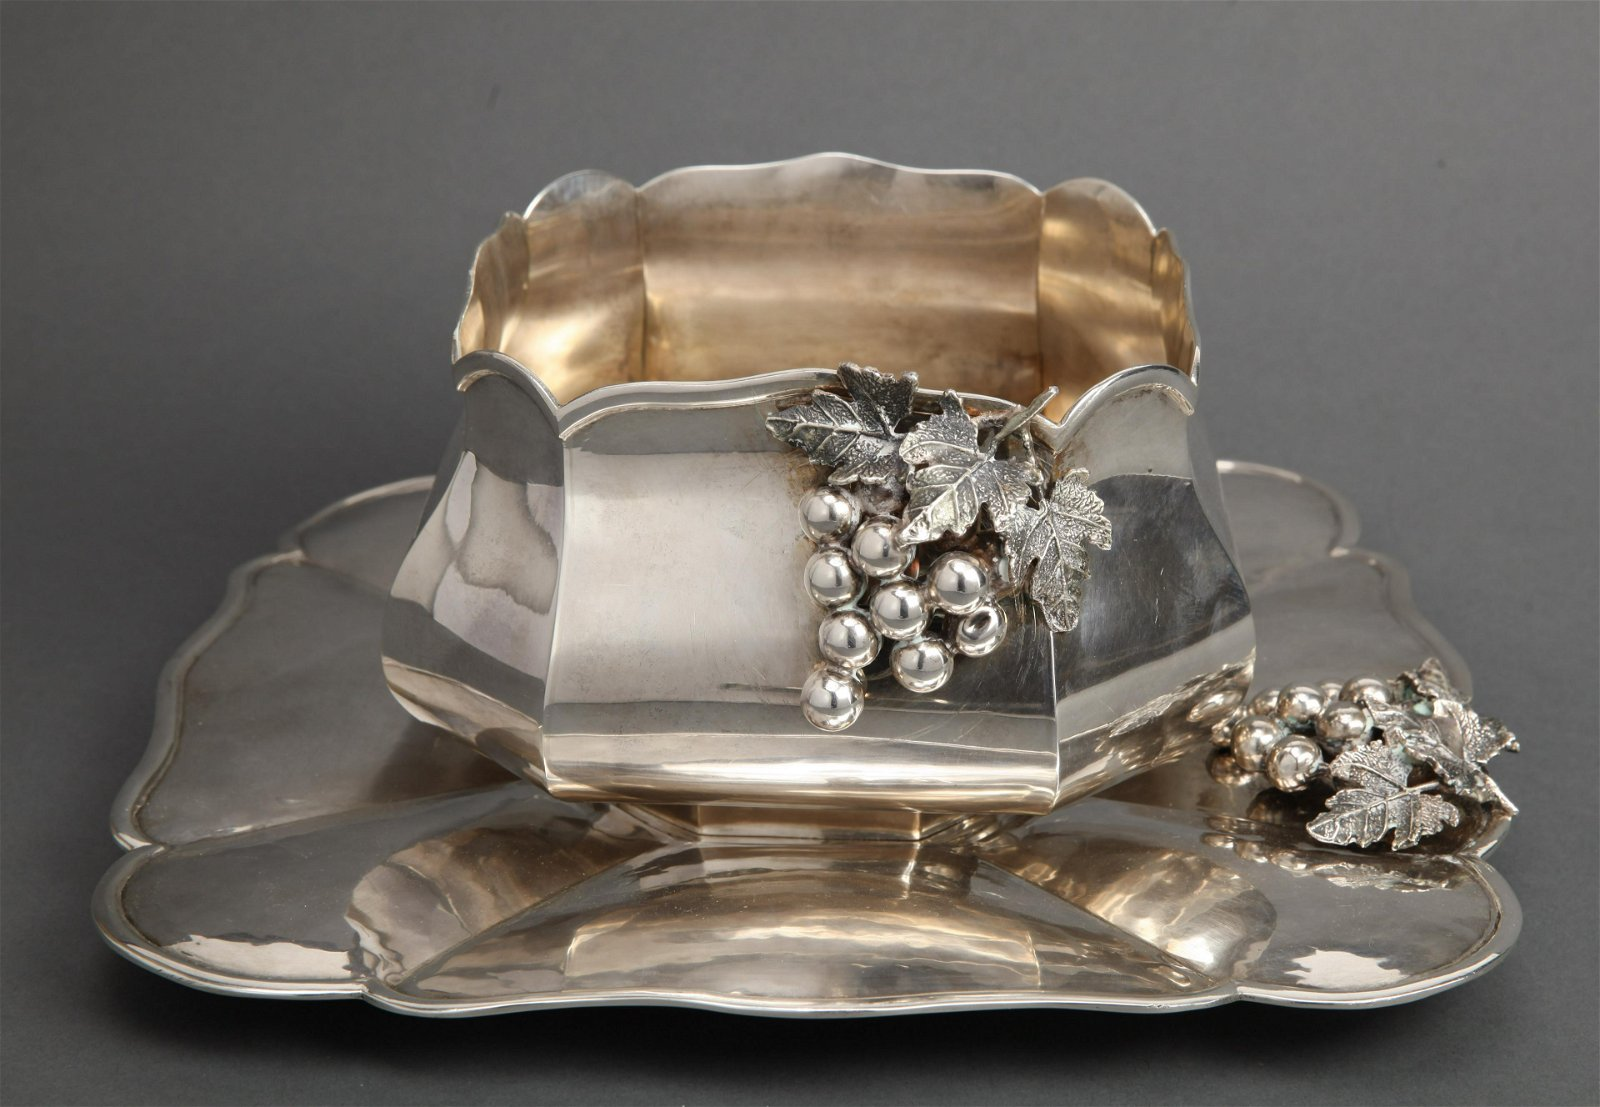 Ornate Silver Center Bowl & Tray with Grape Motif